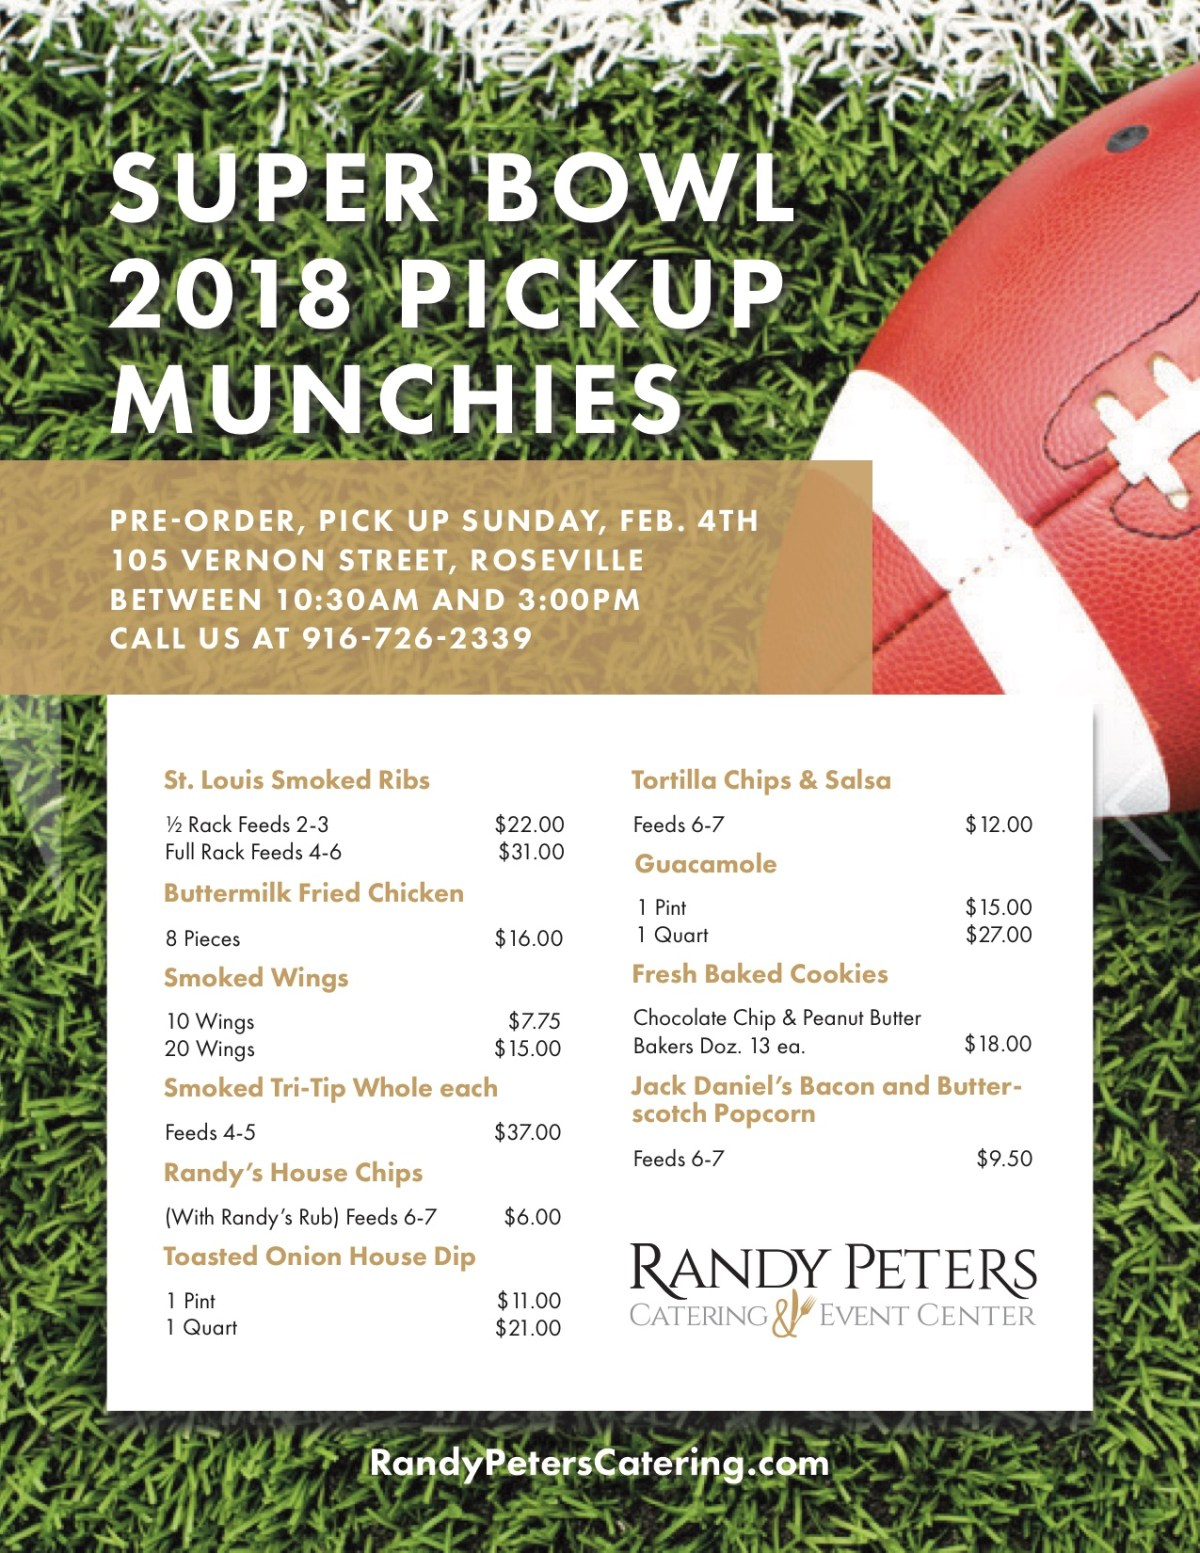 Super Bowl Catering Randy Peters